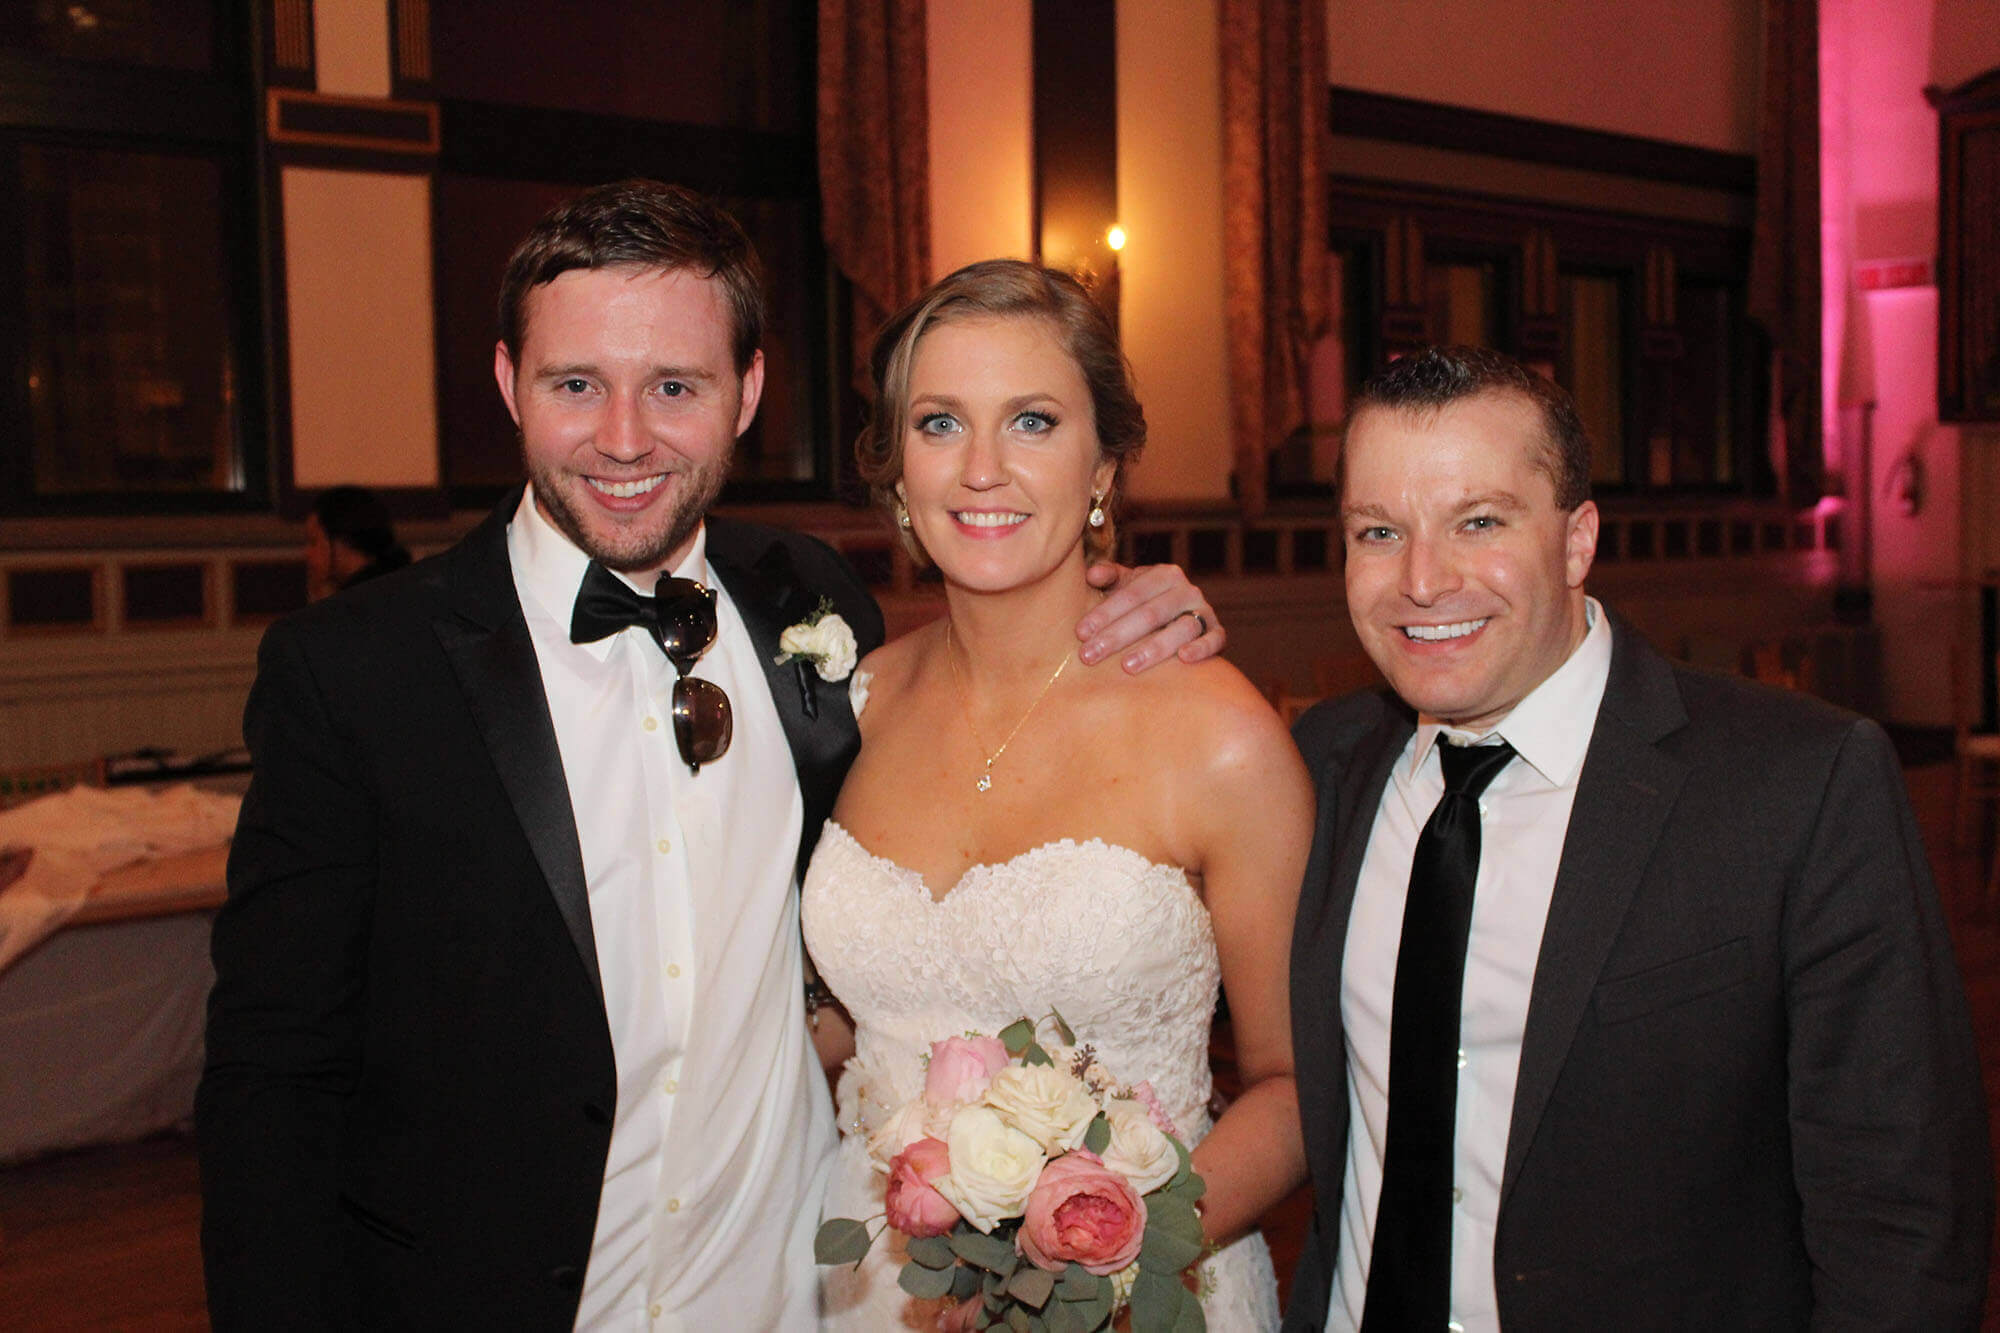 Germania Place Top Wedding DJ with Bride and Groom